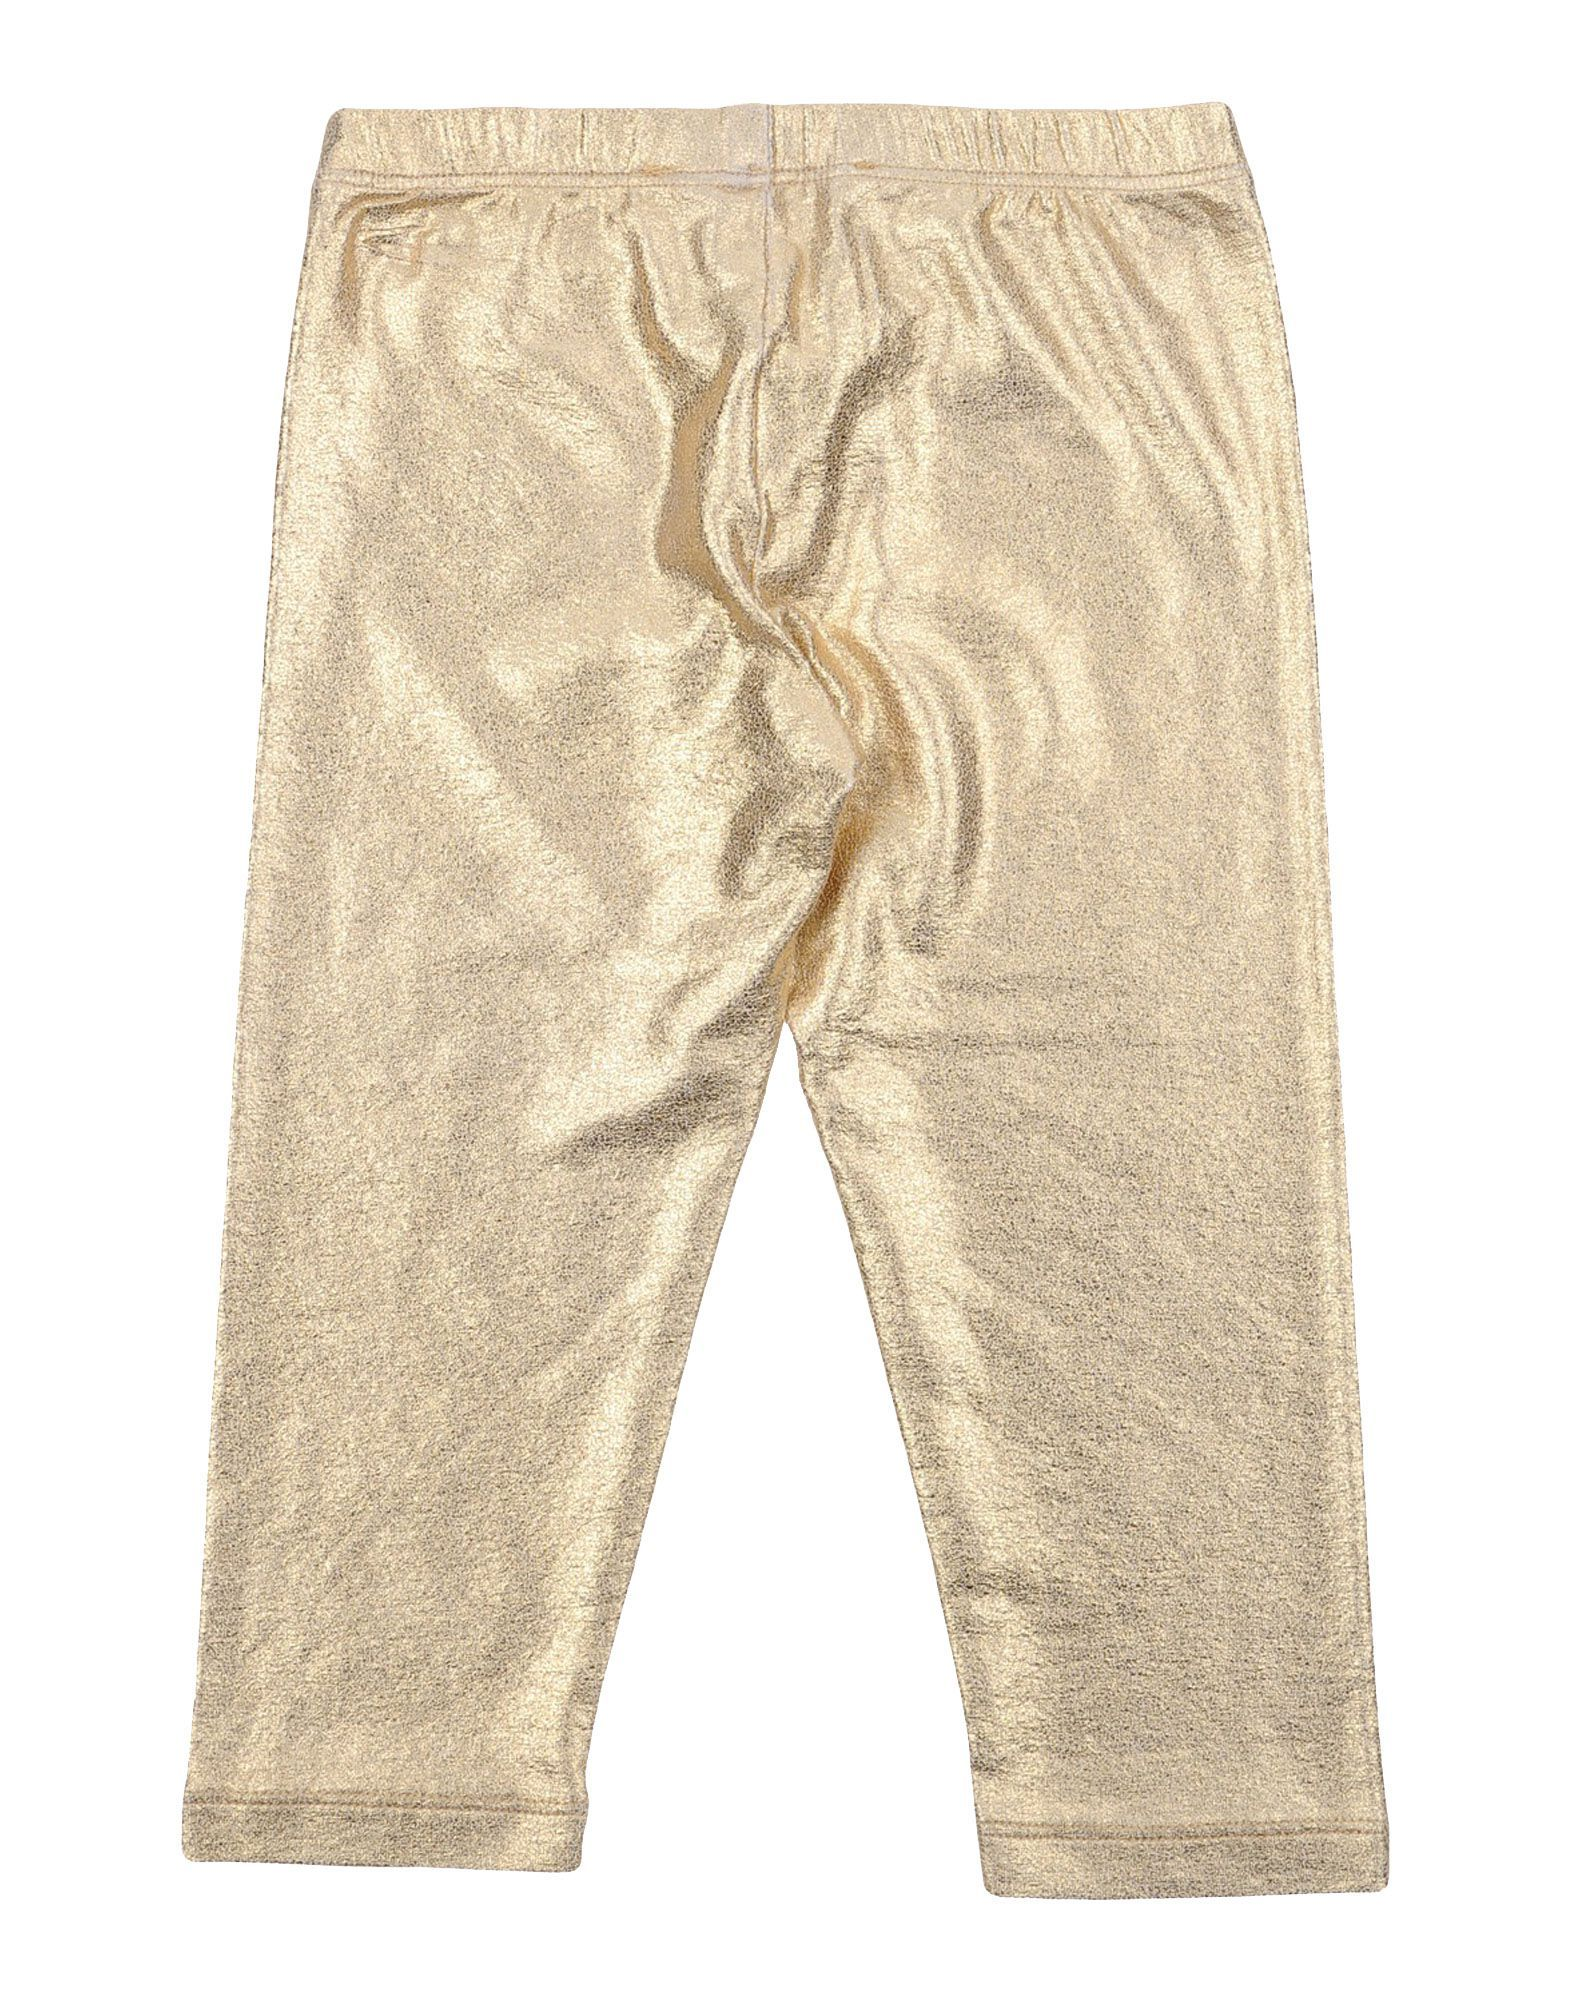 TROUSERS Patrizia Pepe Gold Girl Viscose